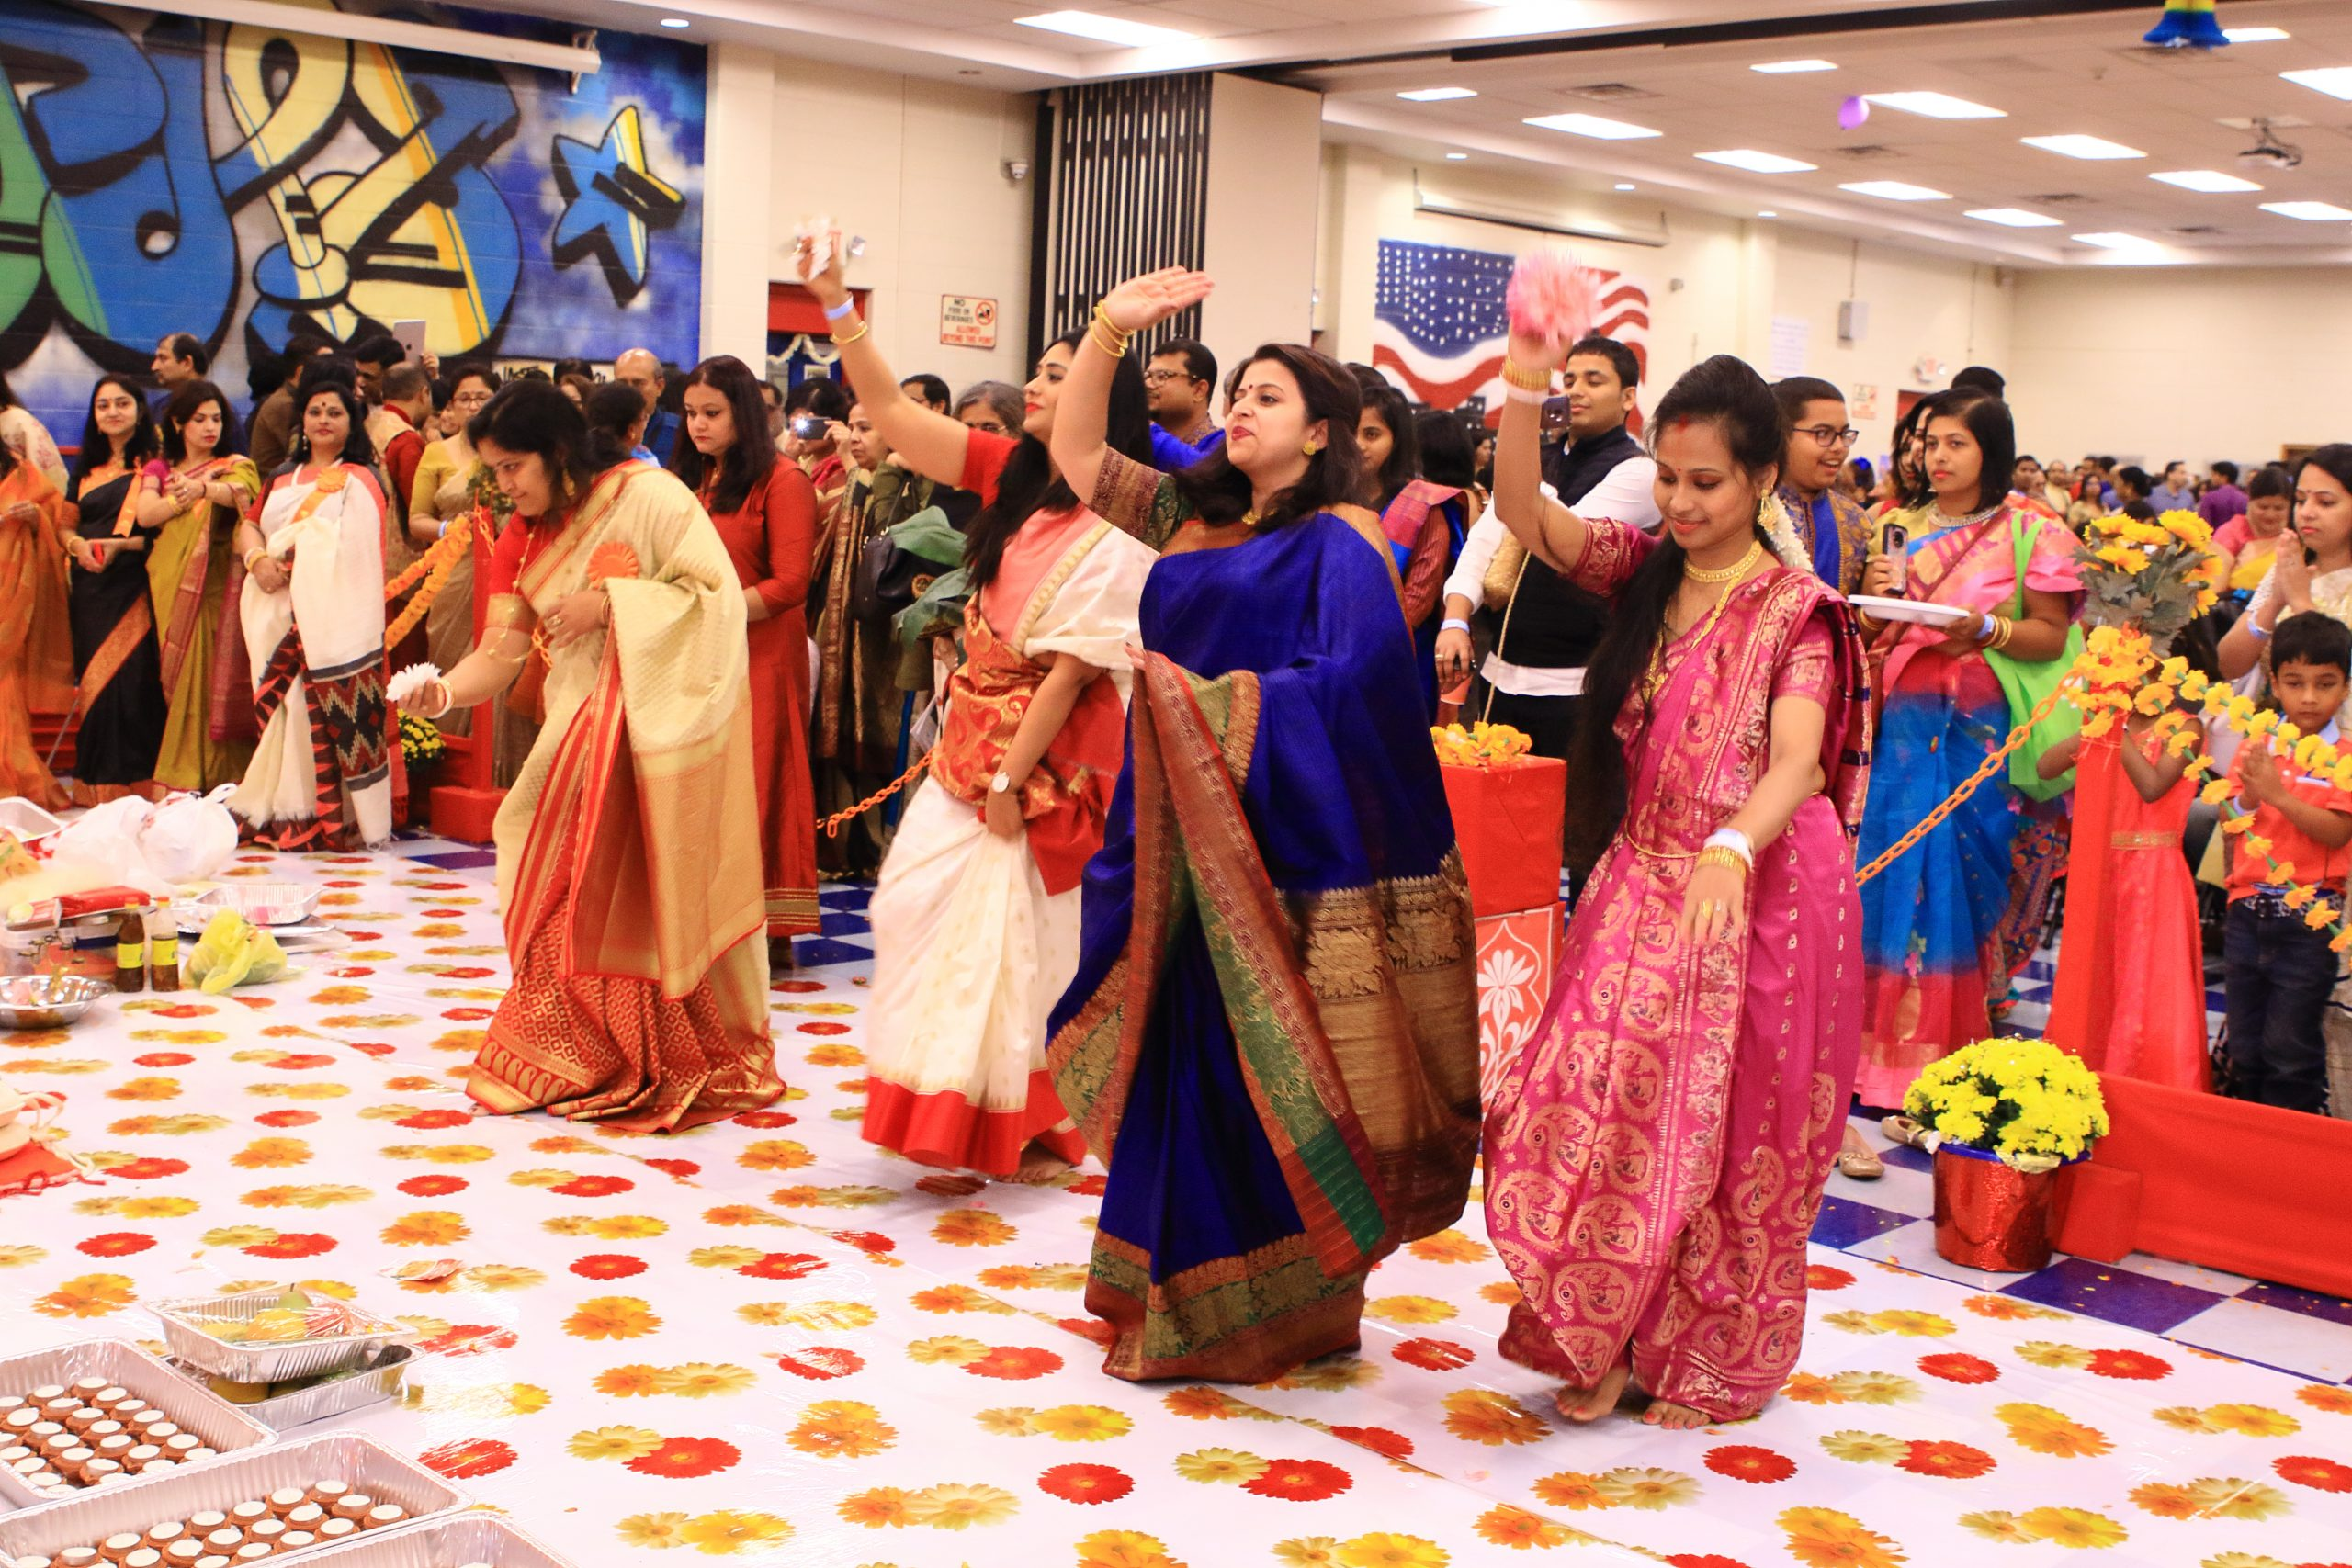 Promote Indian social, cultural and religious events throughout the year